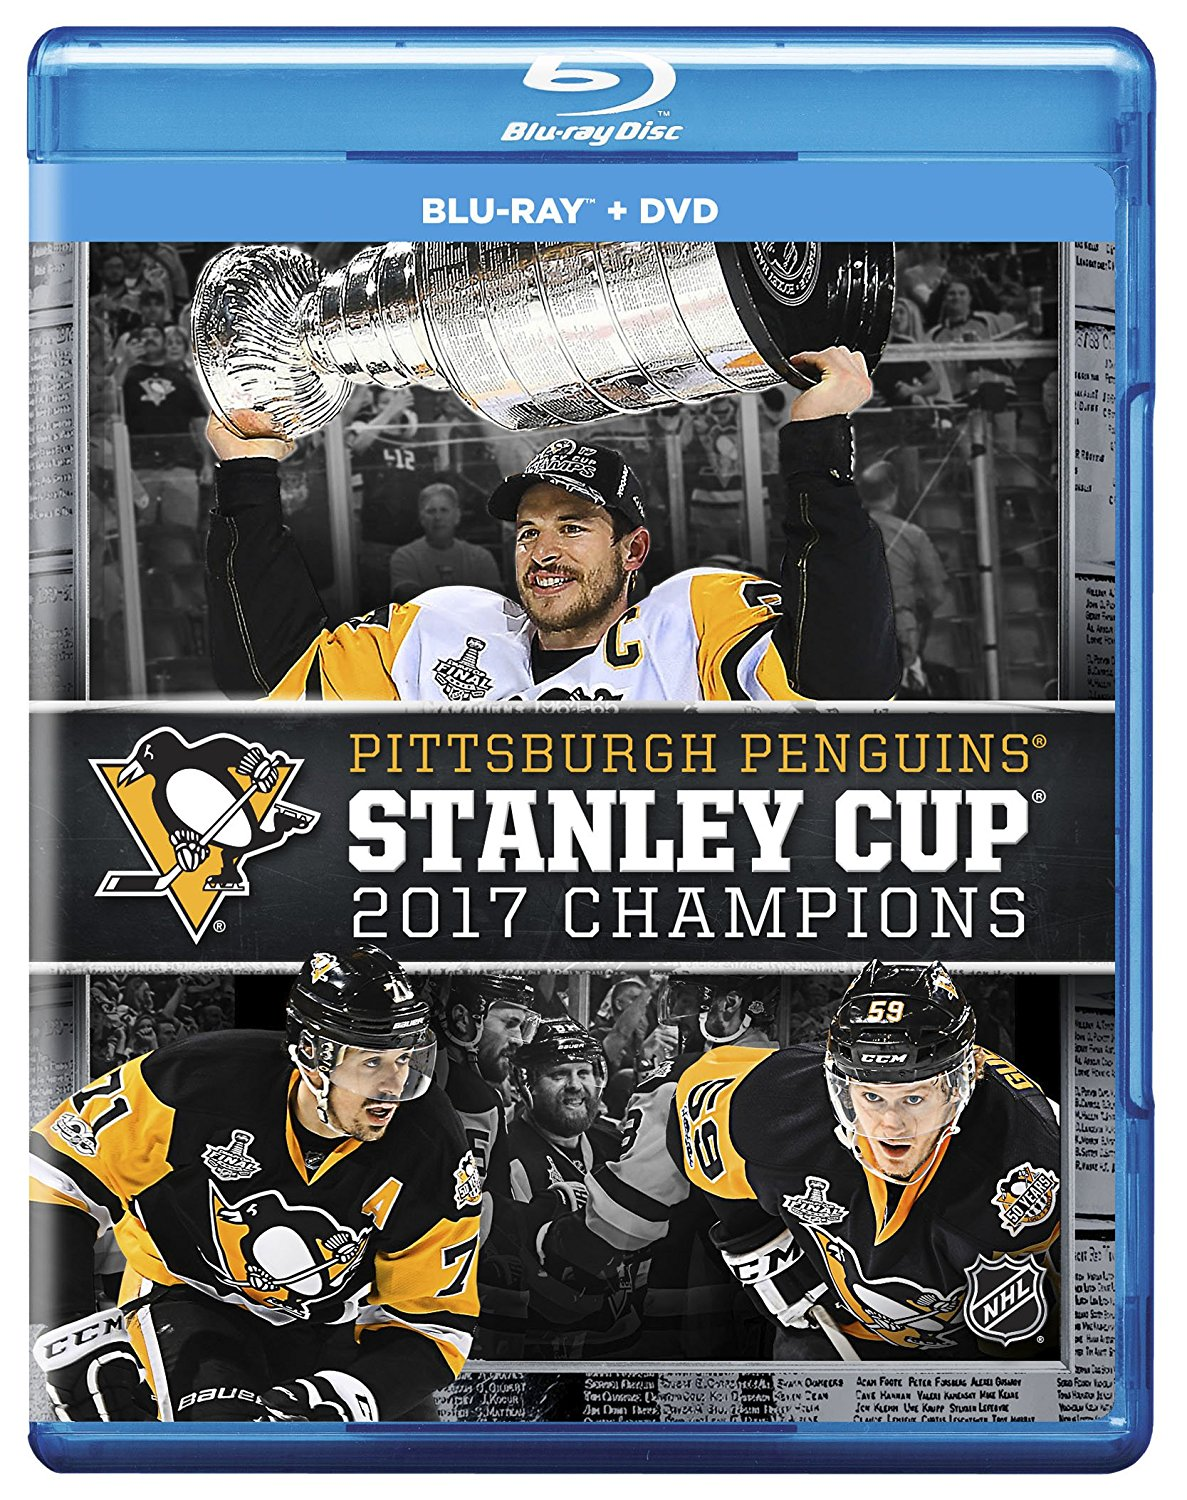 - 2017 Stanley Cup Champions